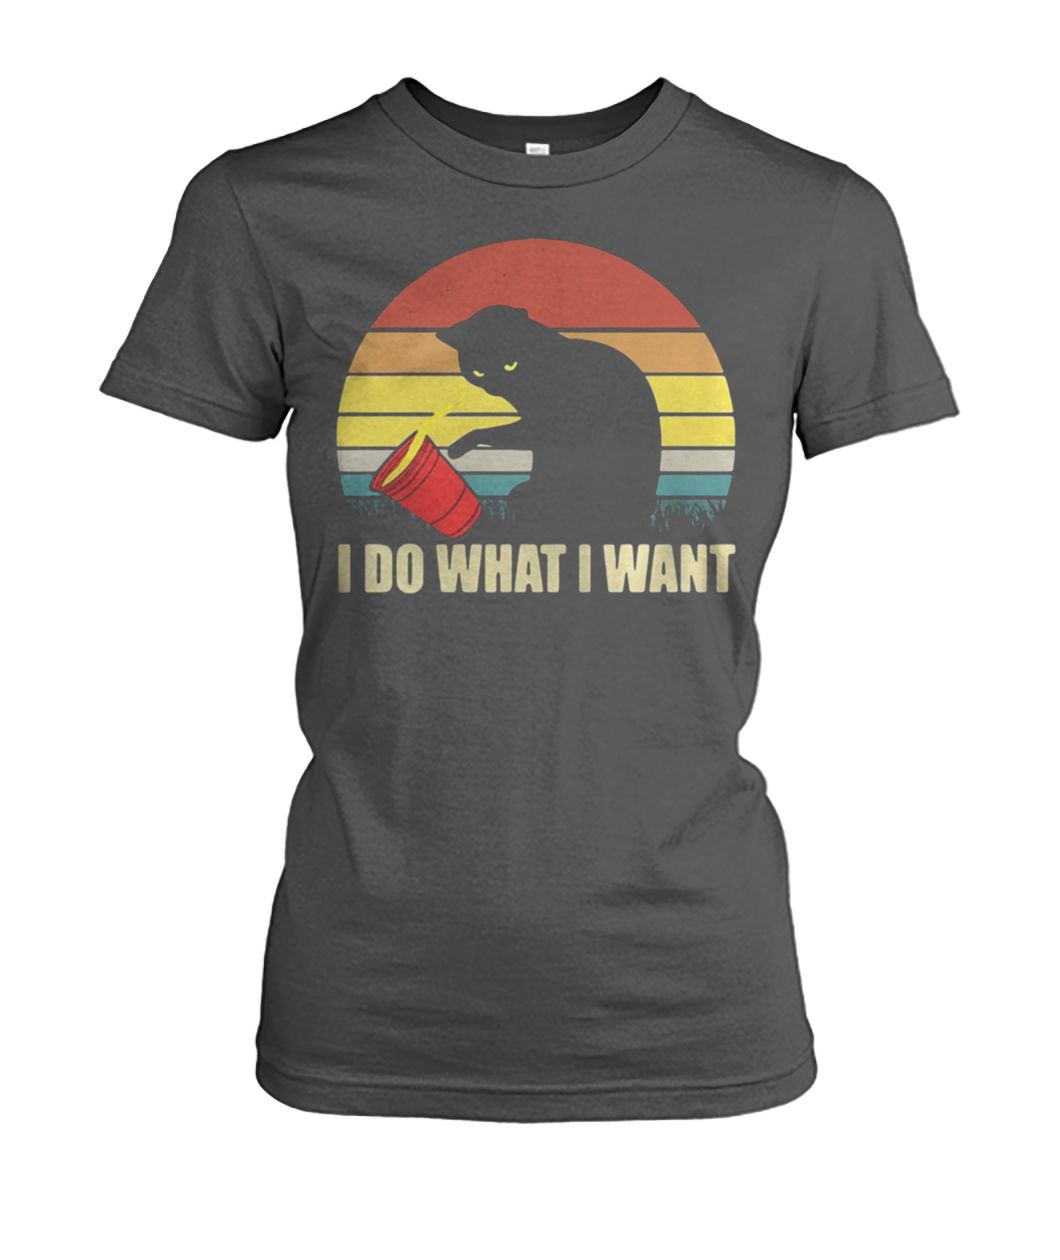 Captain marvel goose cat I do what I want vintage women's crew tee